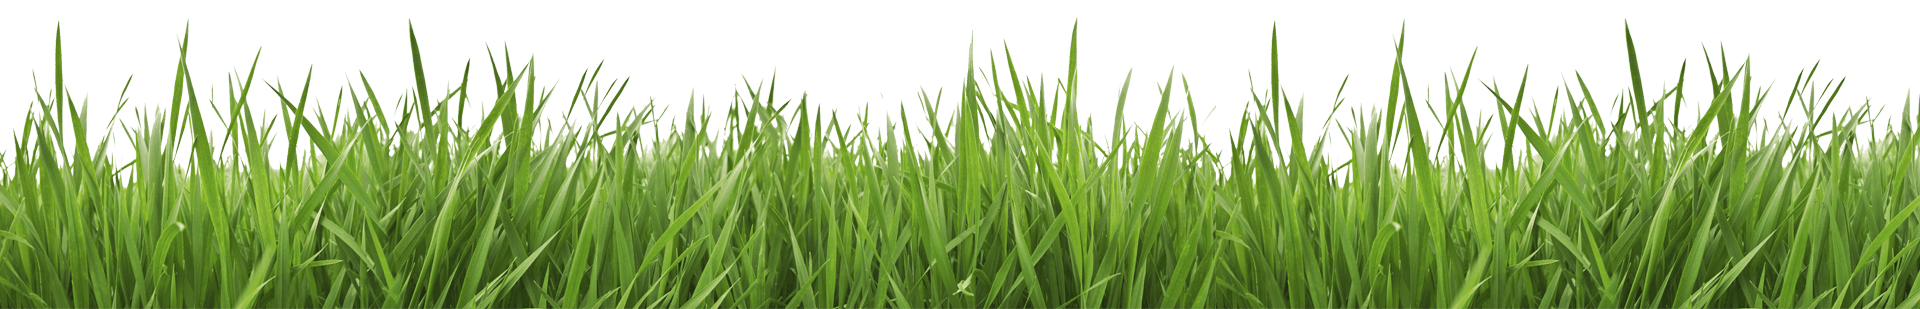 Lawn care clipart grass pattern. Brothers trimm quality services